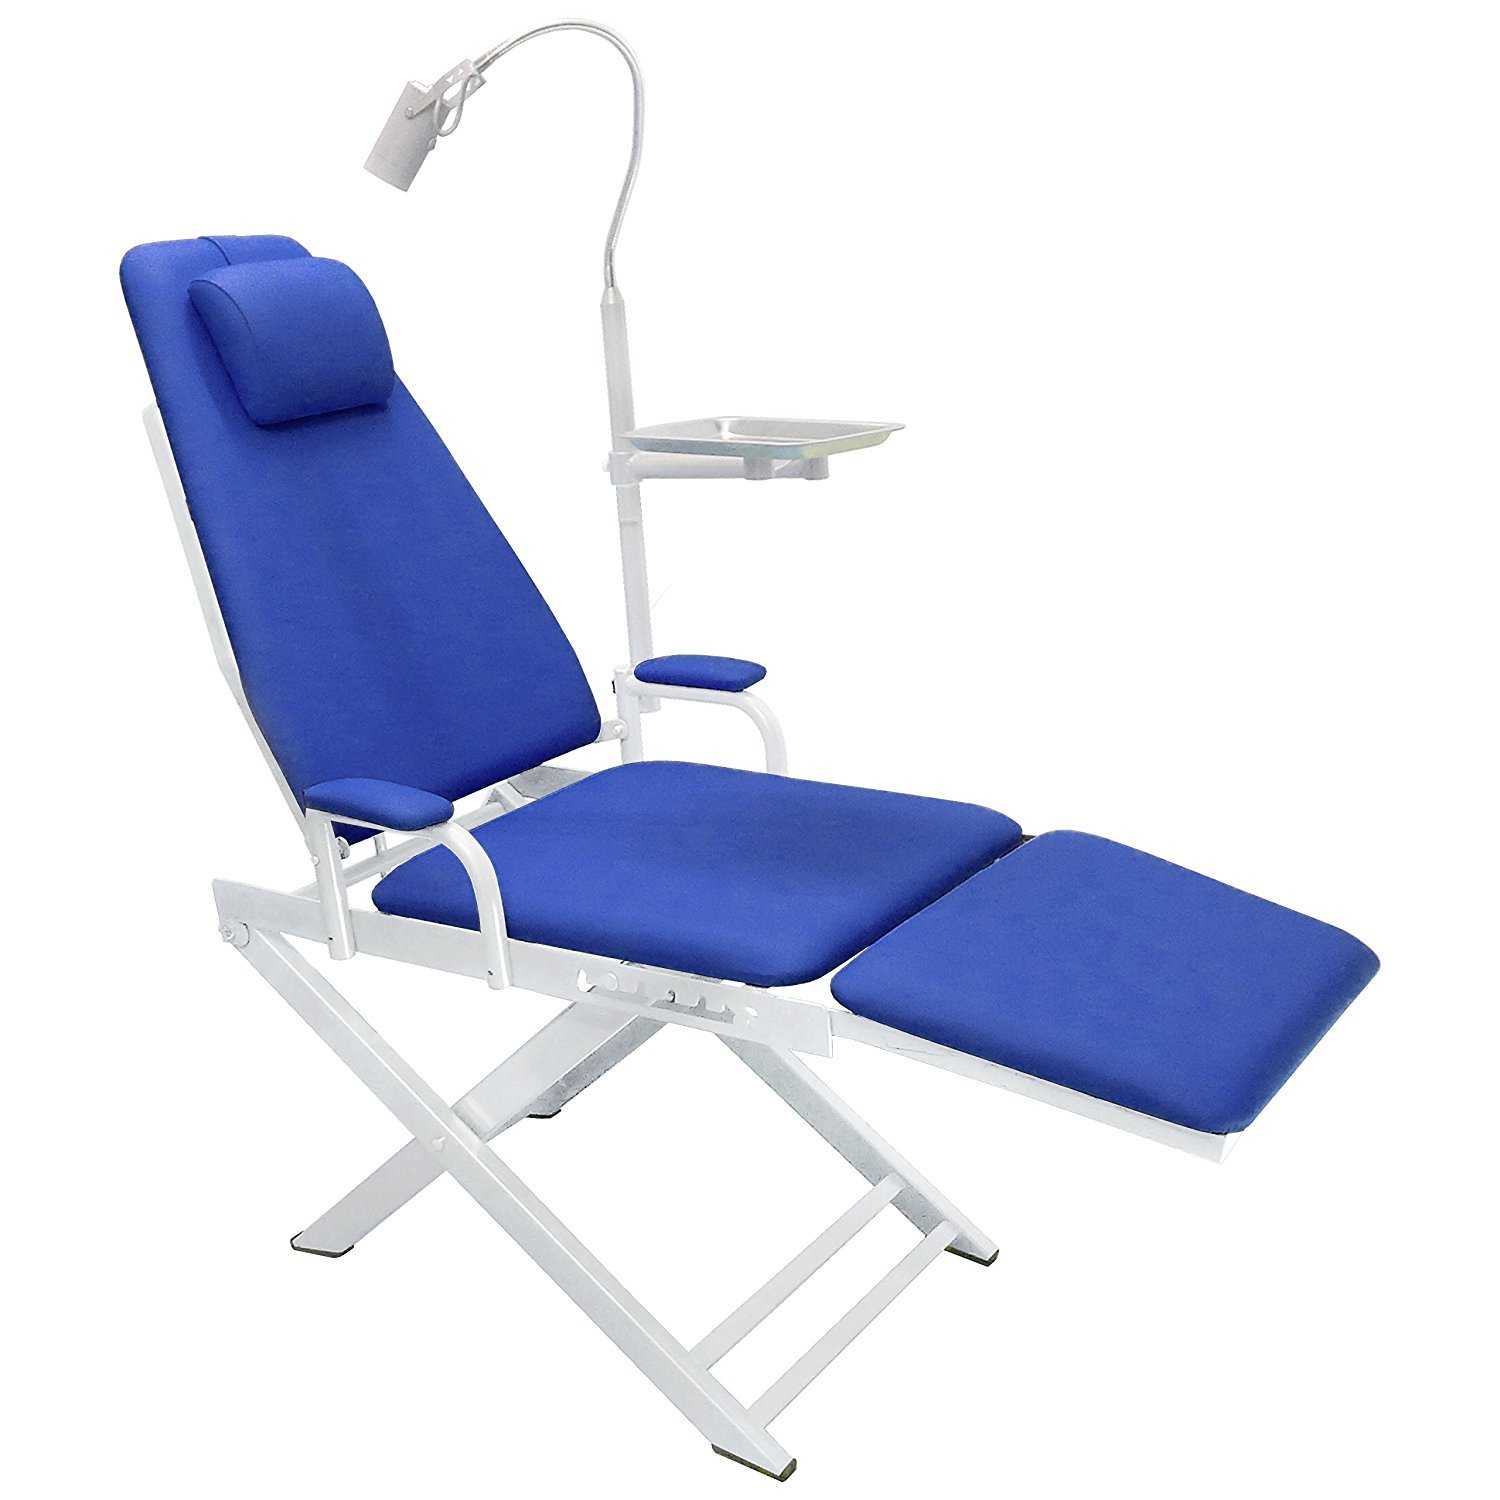 East Dental Portable Chair Cold Light Cuspidor Tray Dentistry Equipment Mobile Unit